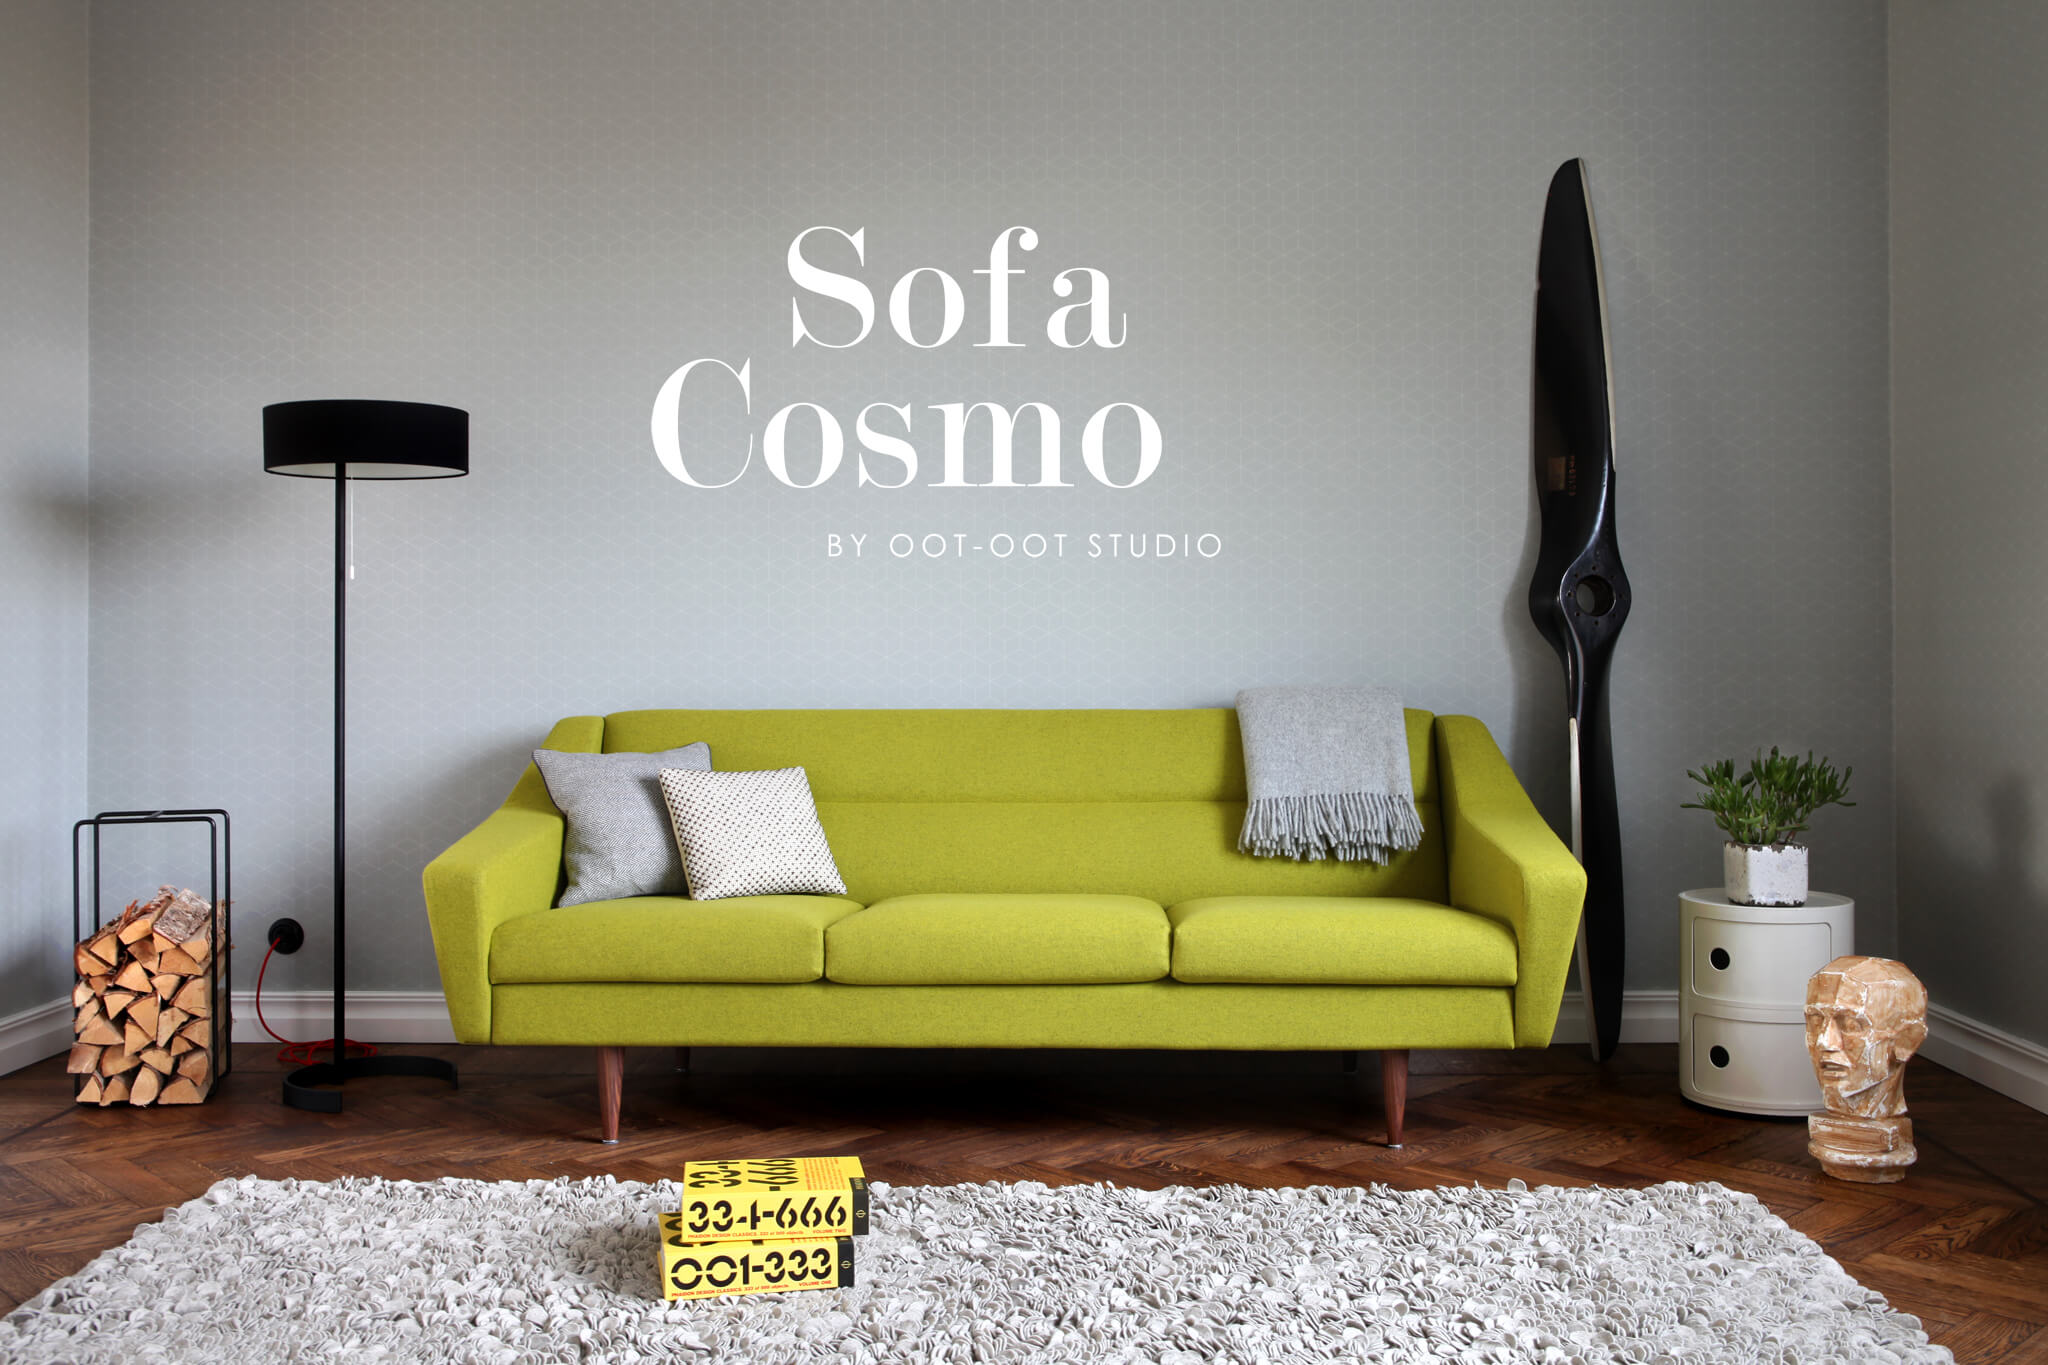 Sofa_Cosmo_by_Oot-Oot_Studio_vt